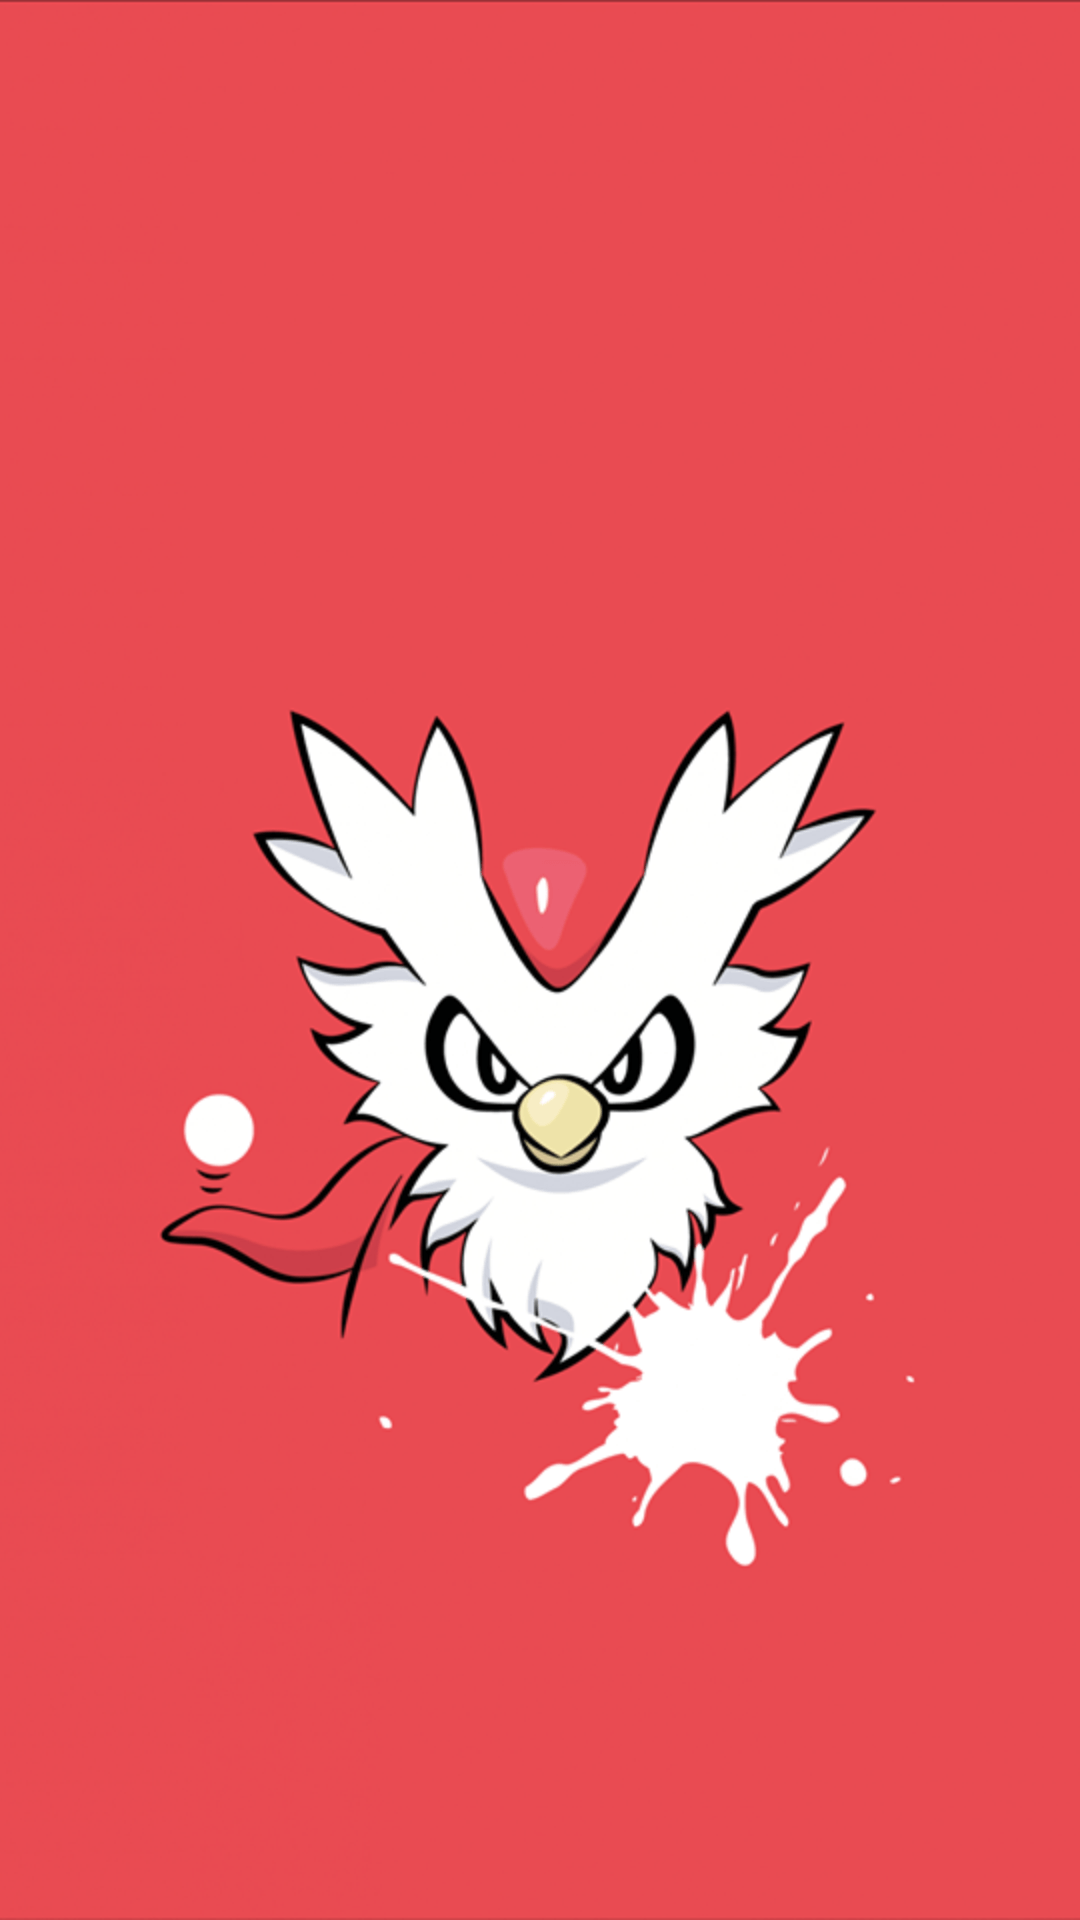 Download Delibird 1080 x 1920 Wallpapers - 4684045 - POKEMON ...